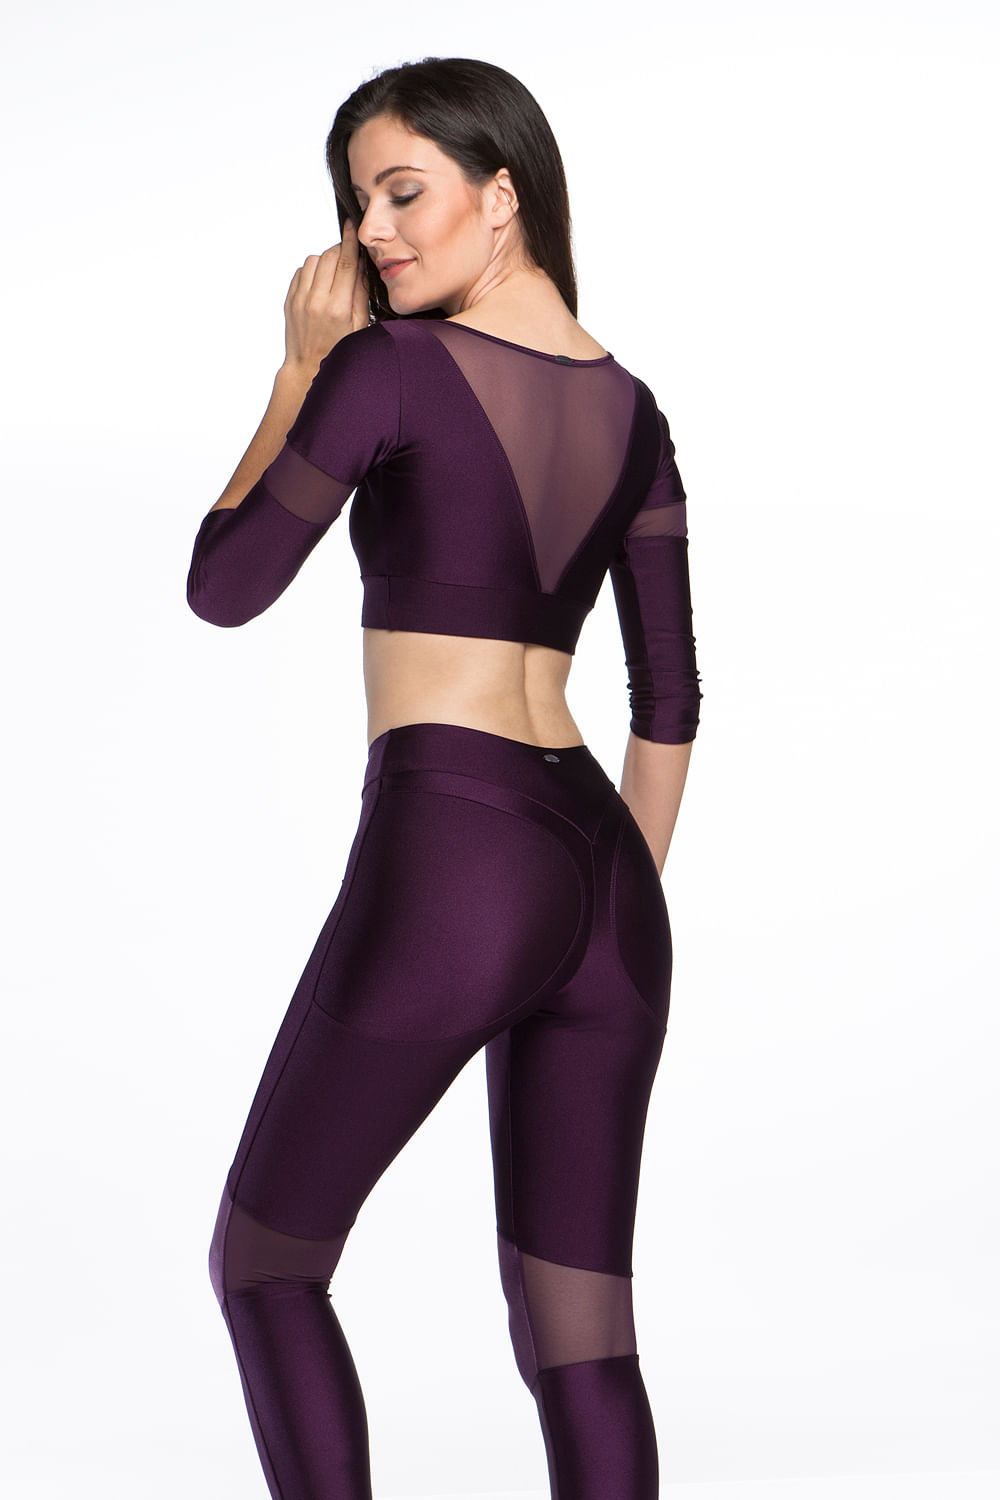 2974---Top-Fitness-Cropped-V-Tule----Roxo-Escuro--2-